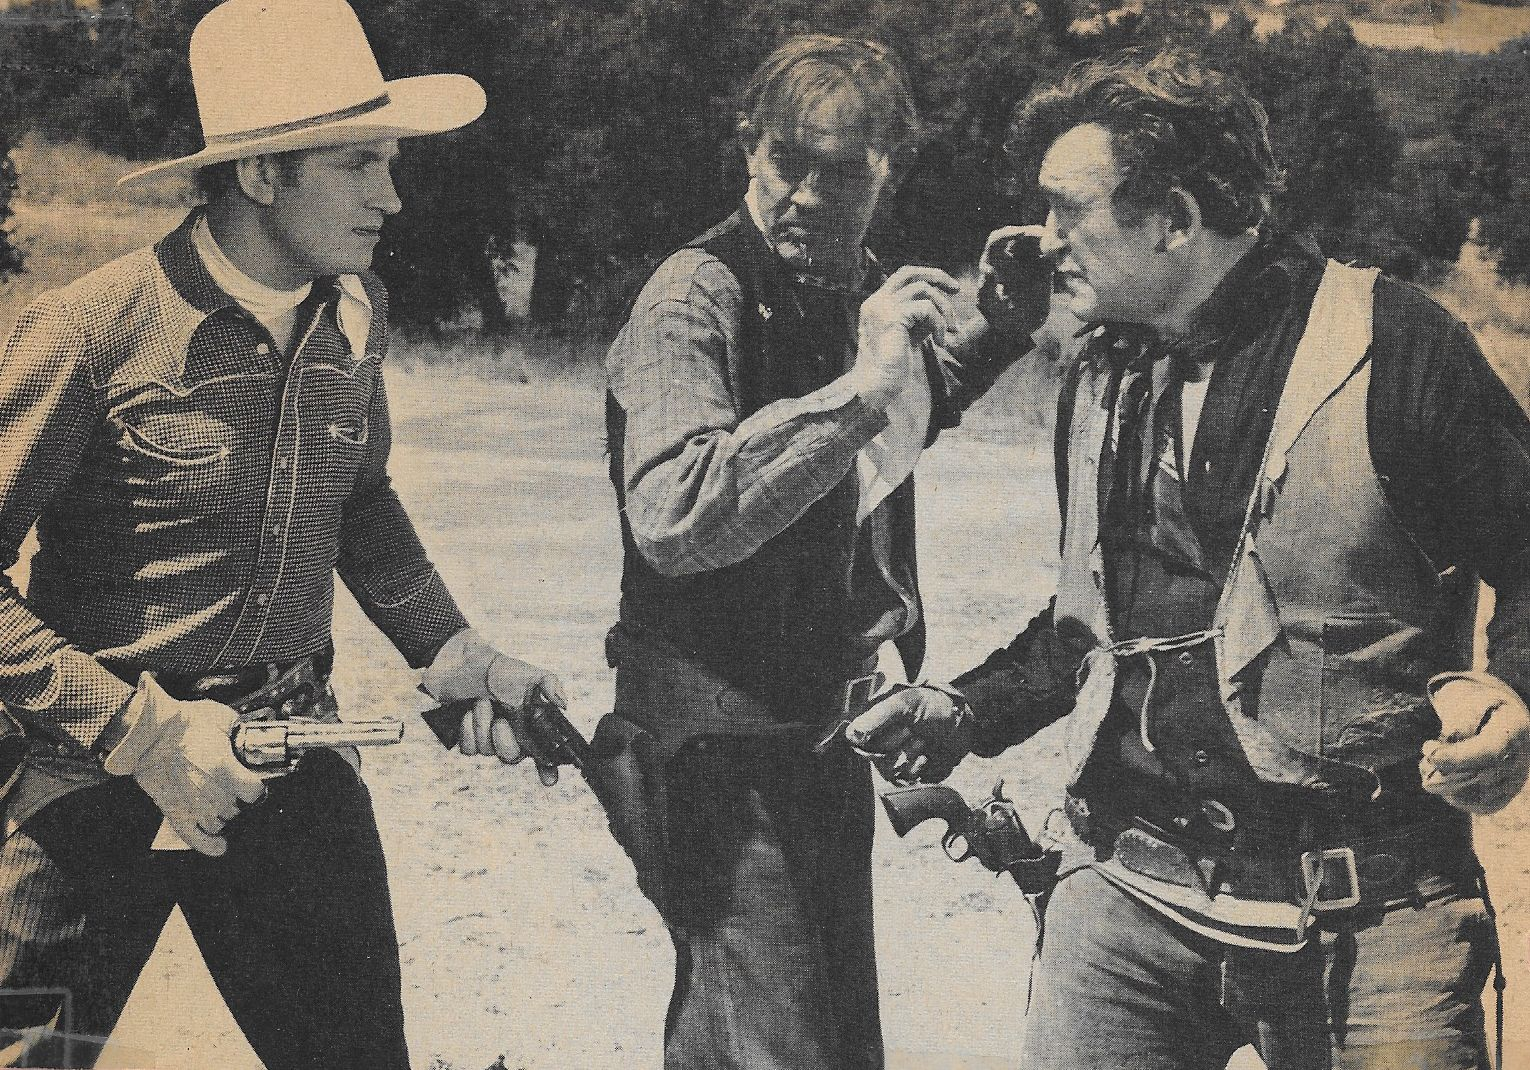 Gene Autry, Tom London, and Bud Osborne in Prairie Moon (1938)